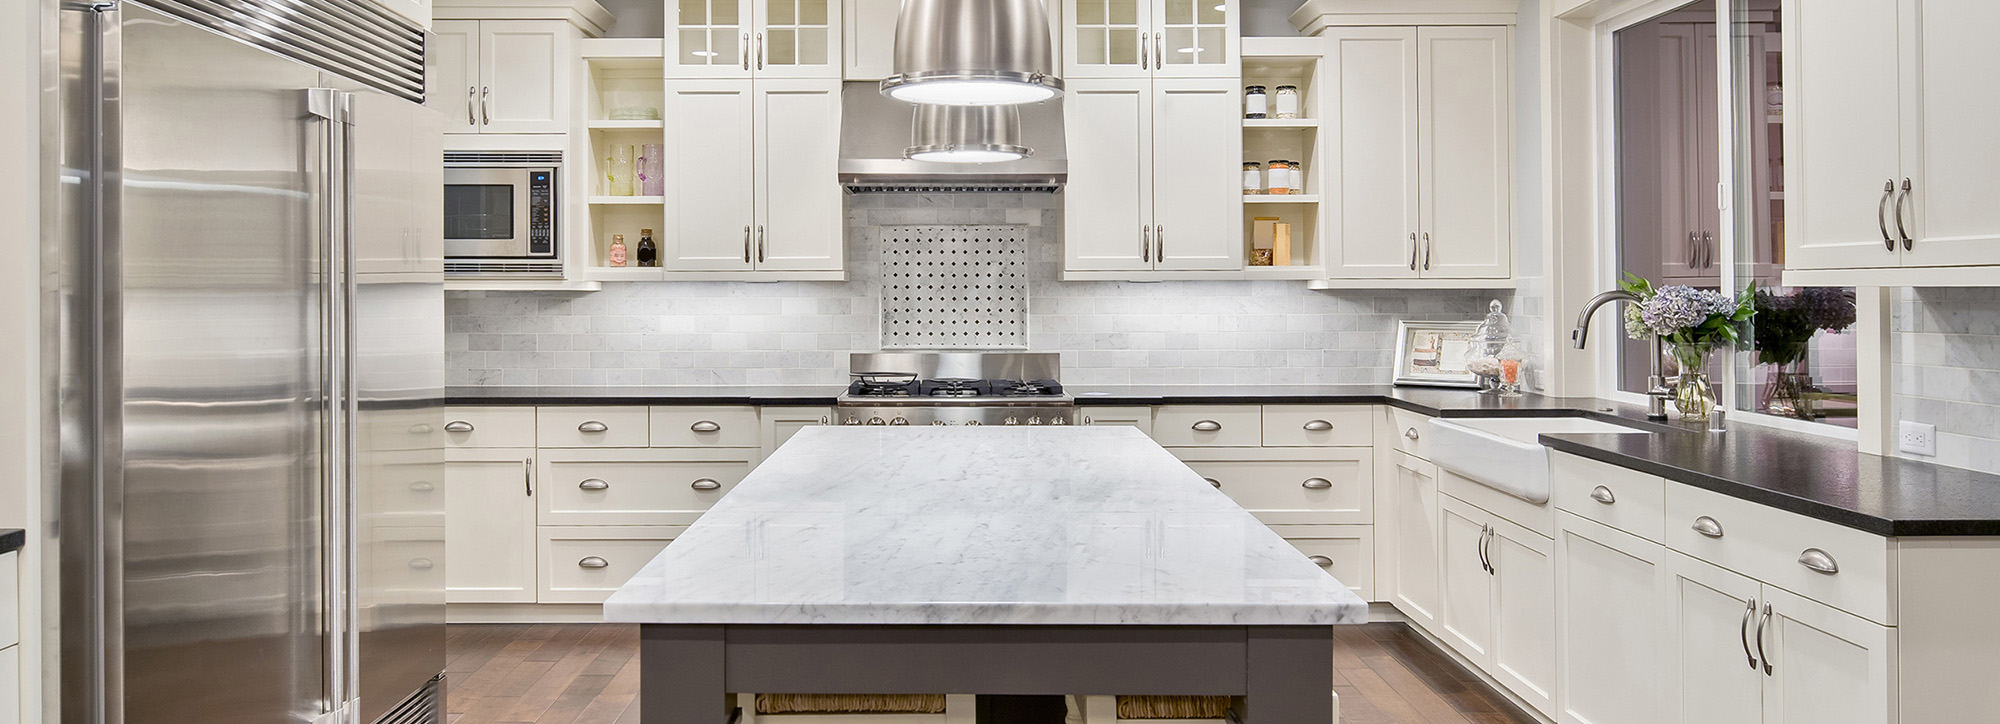 Tile Market Of Delaware: Custom Kitchen, Bath And Floor Tiles